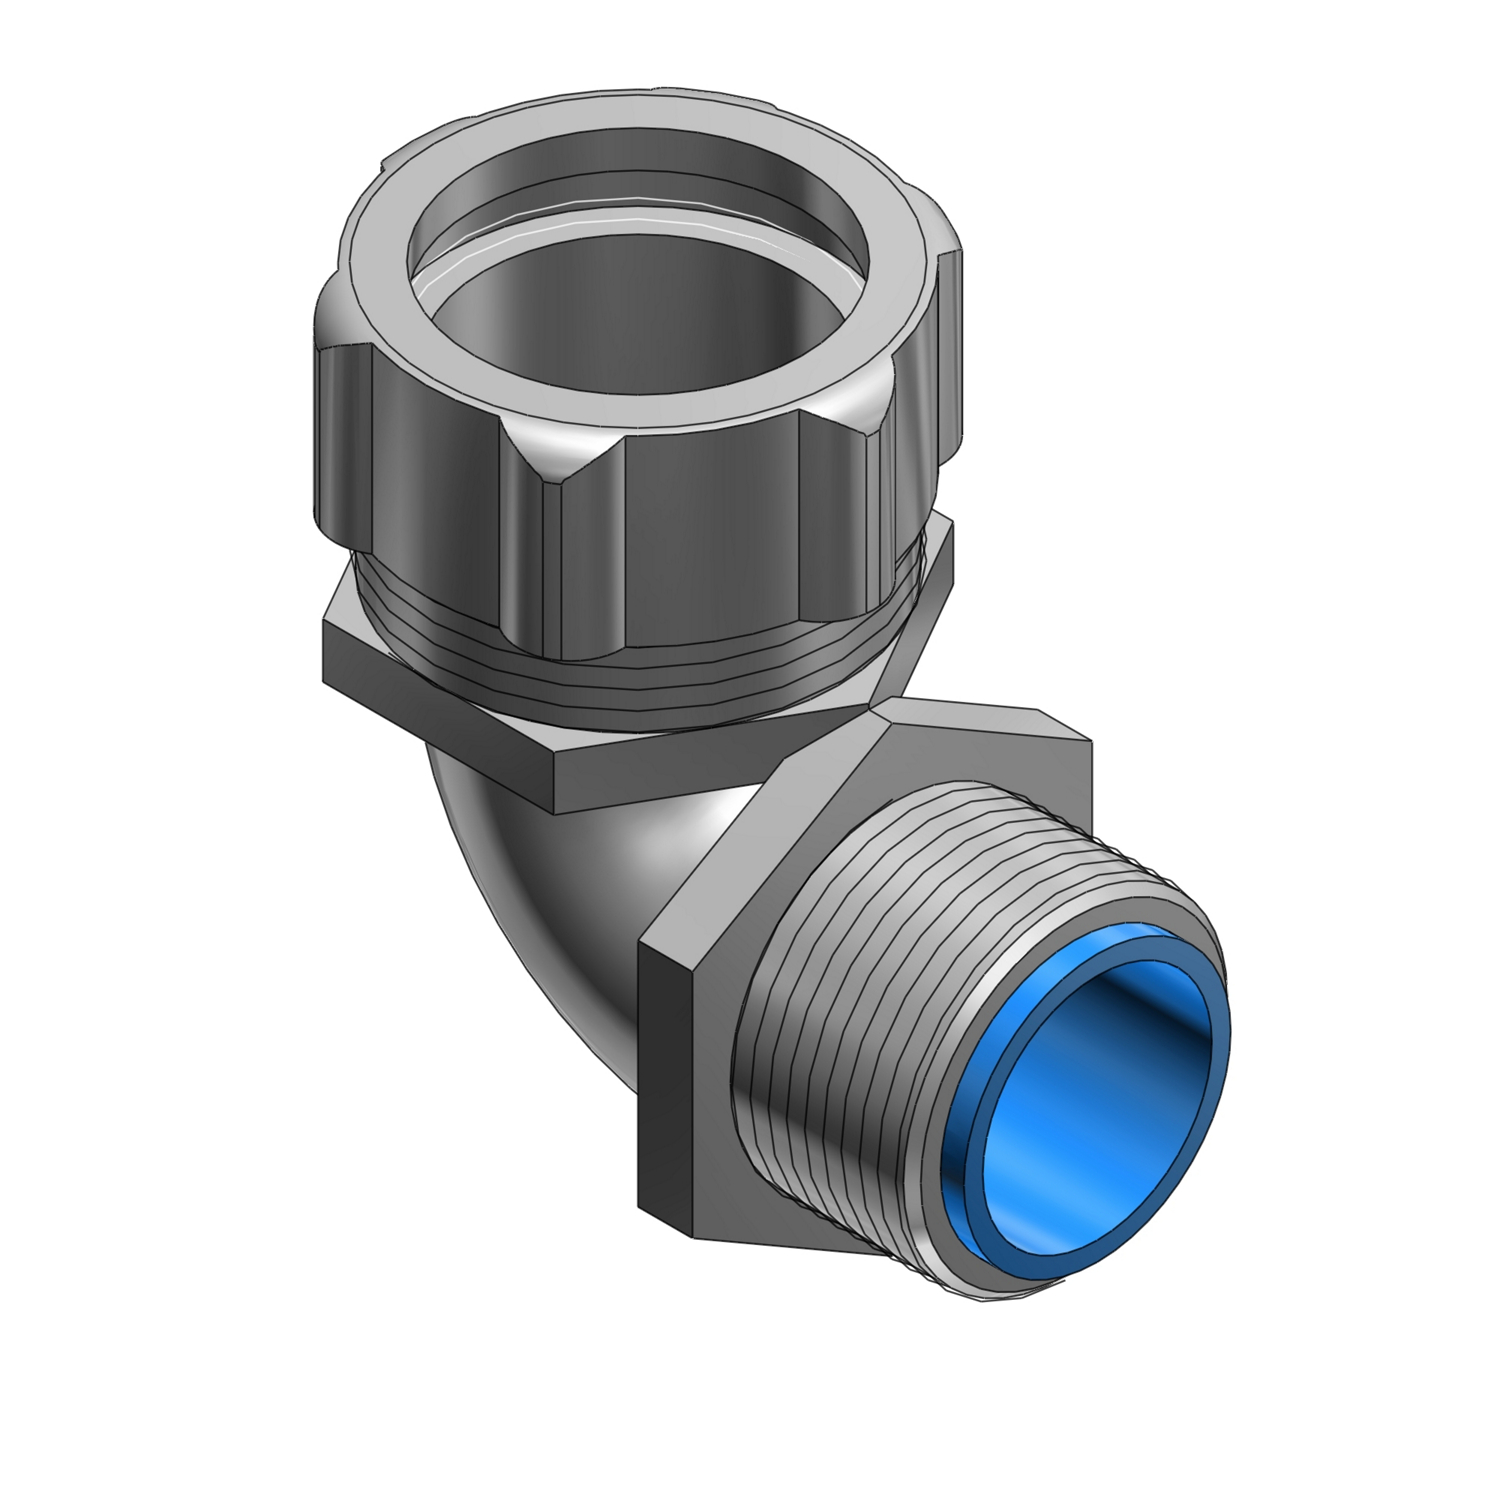 INSULATED L.T. CONNECTOR